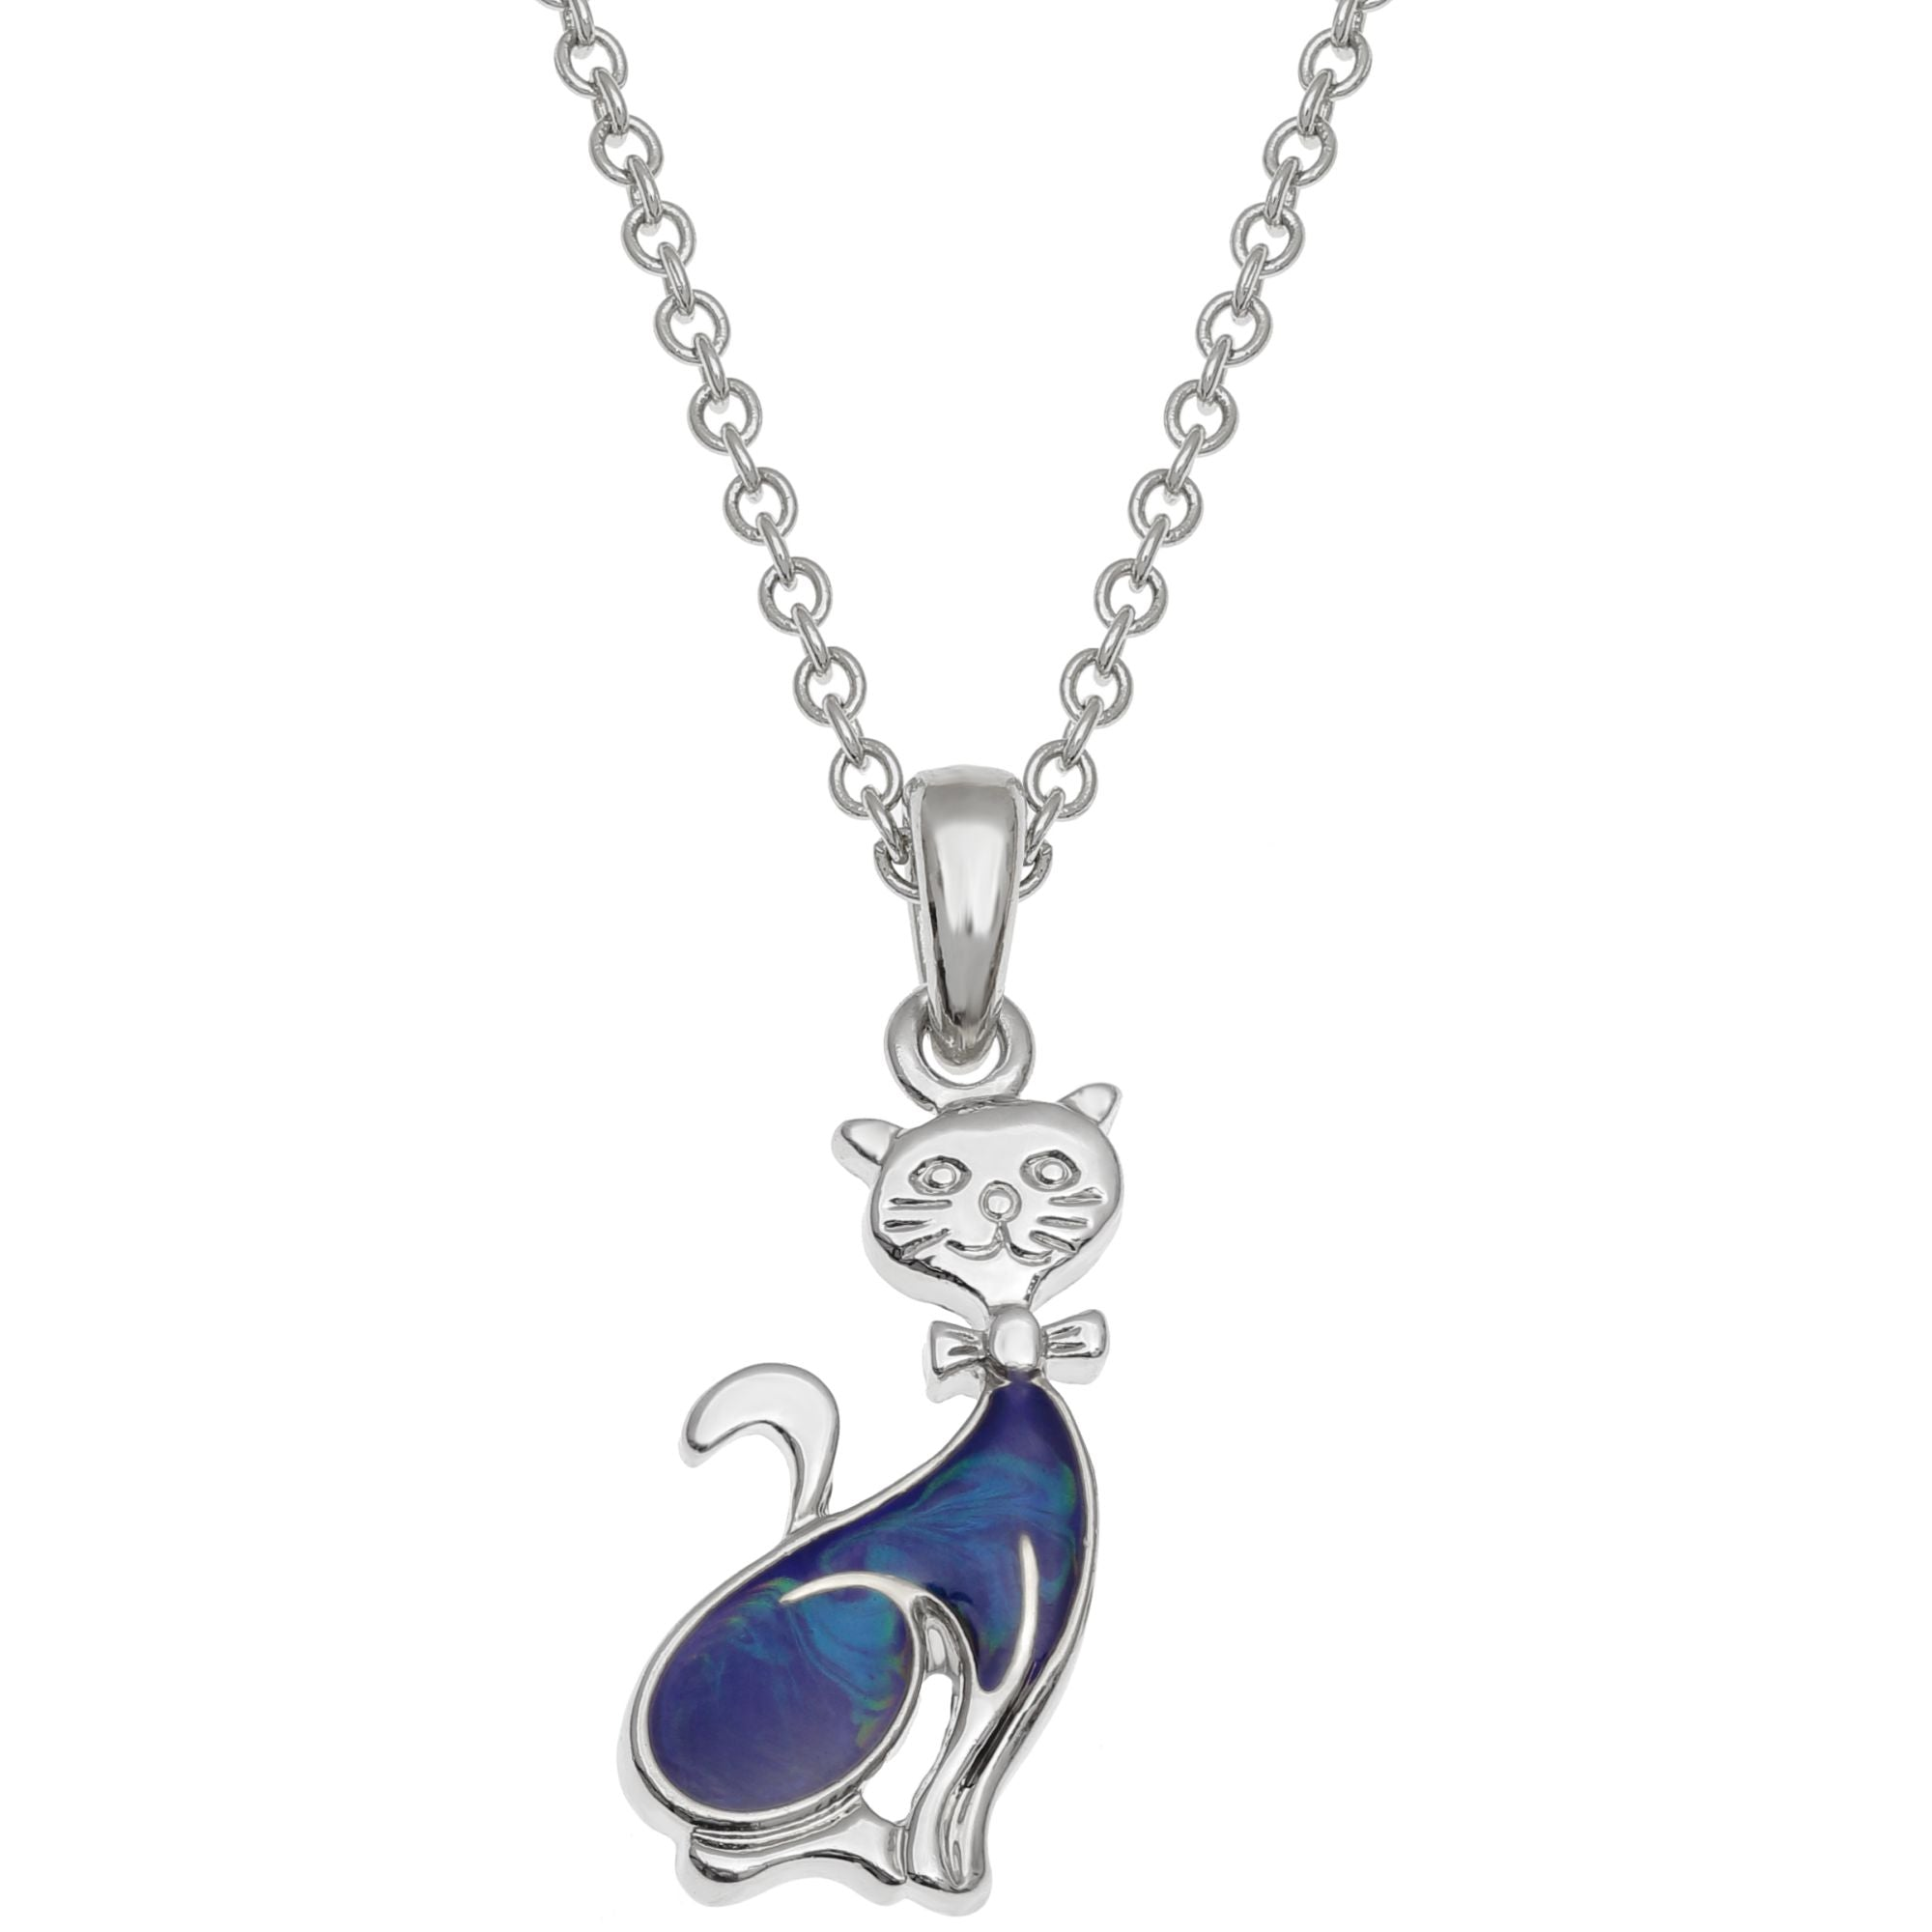 Cats Mood Change Necklace